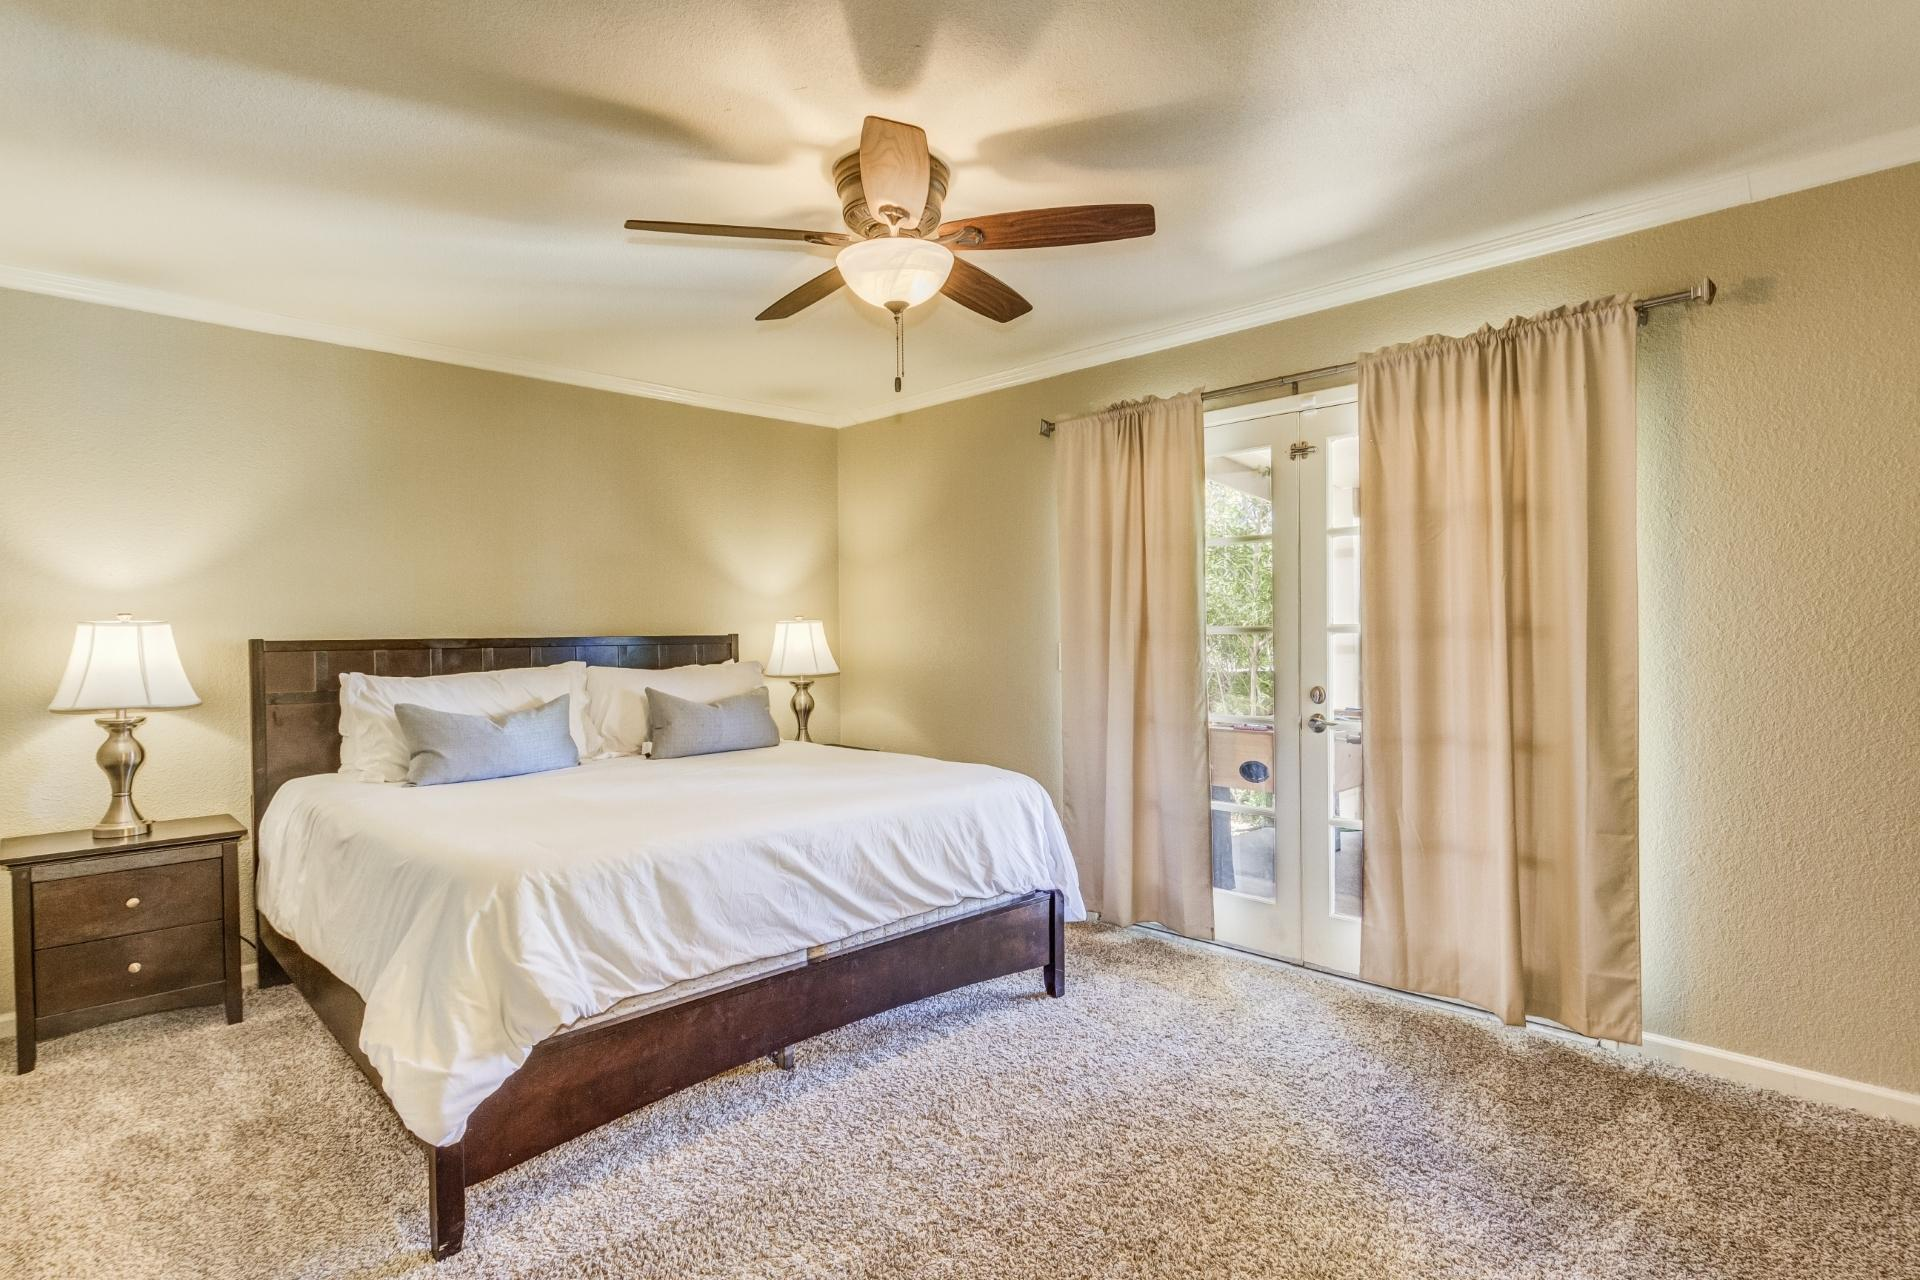 Spacious Master-King Bed-TV.Room for 2 Twin Beds